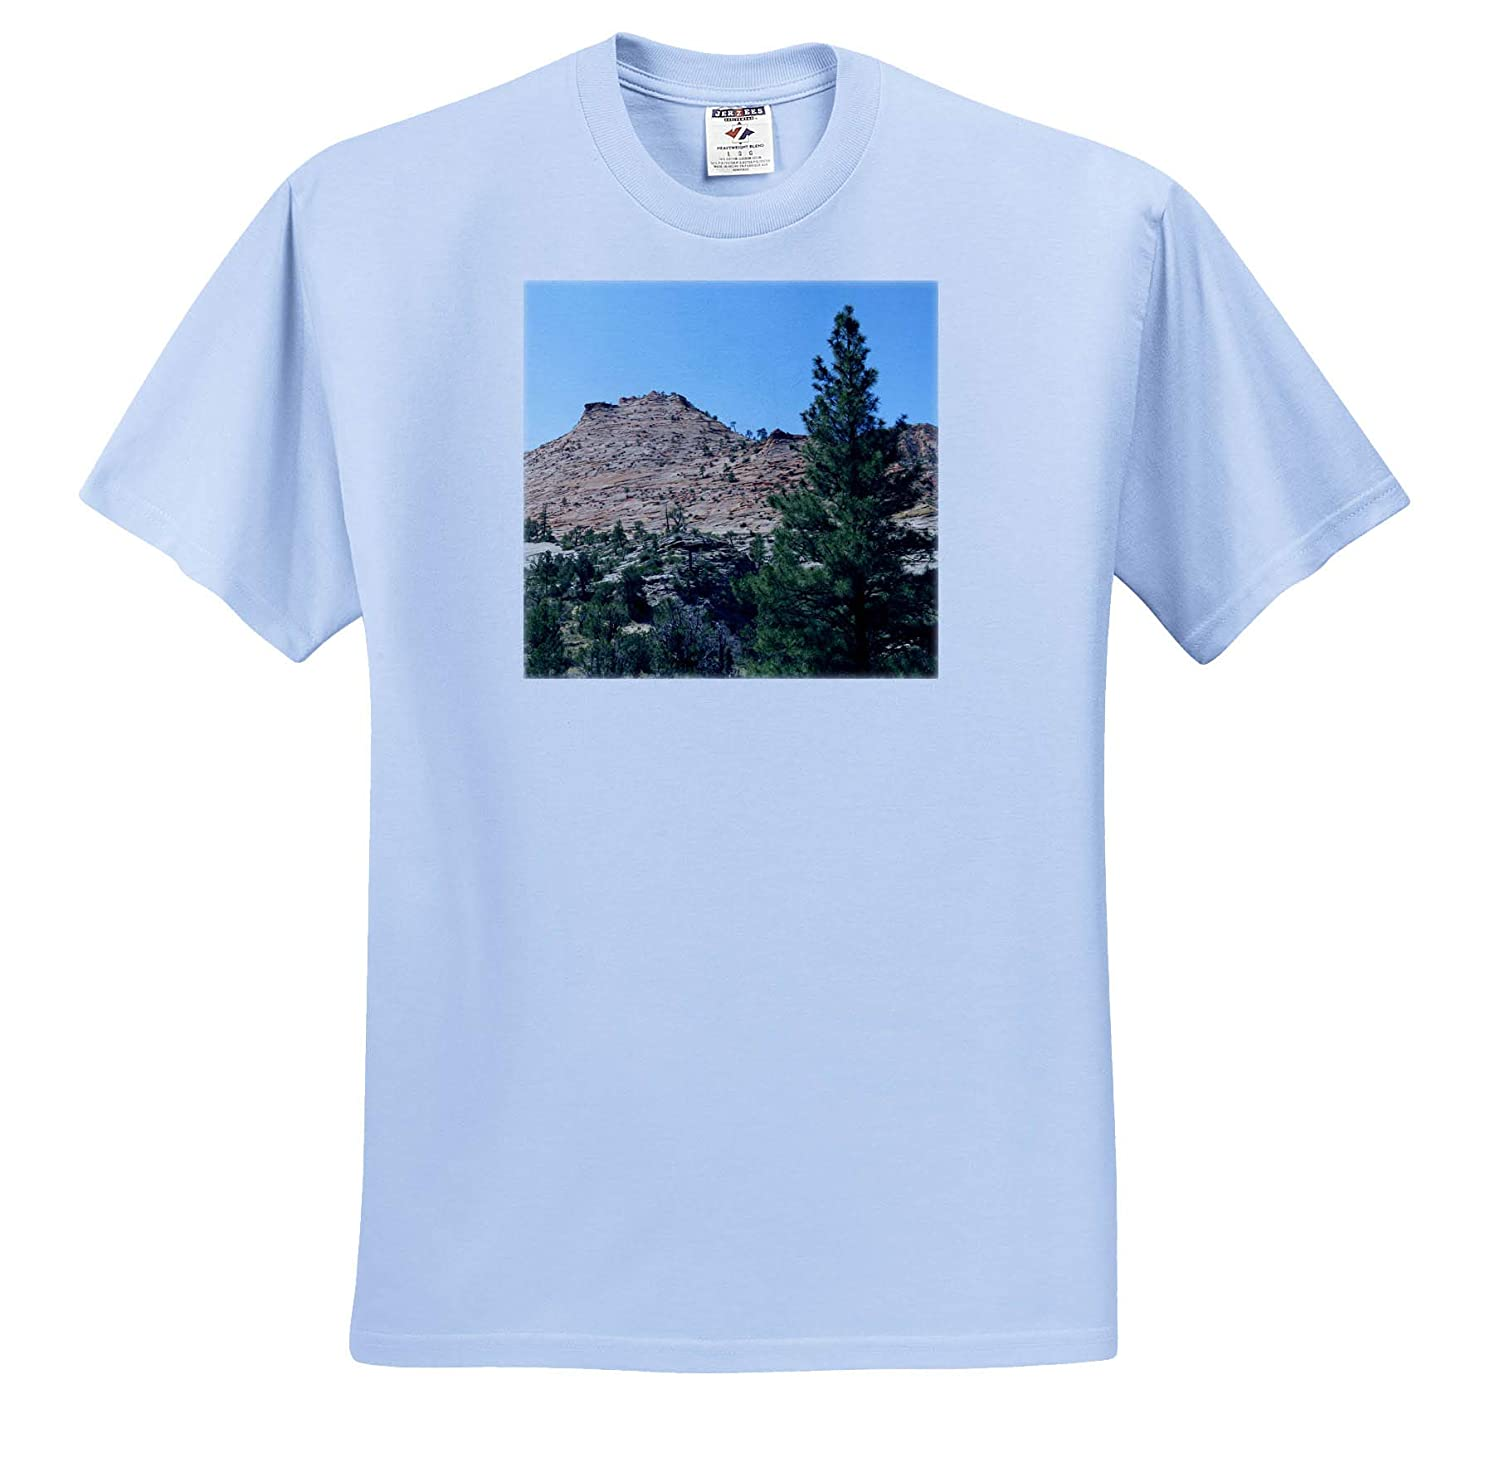 The Mountains and Trees on The Way Out of Zion and onto Orderville 3dRose Jos Fauxtographee T-Shirts Other Side of Zion